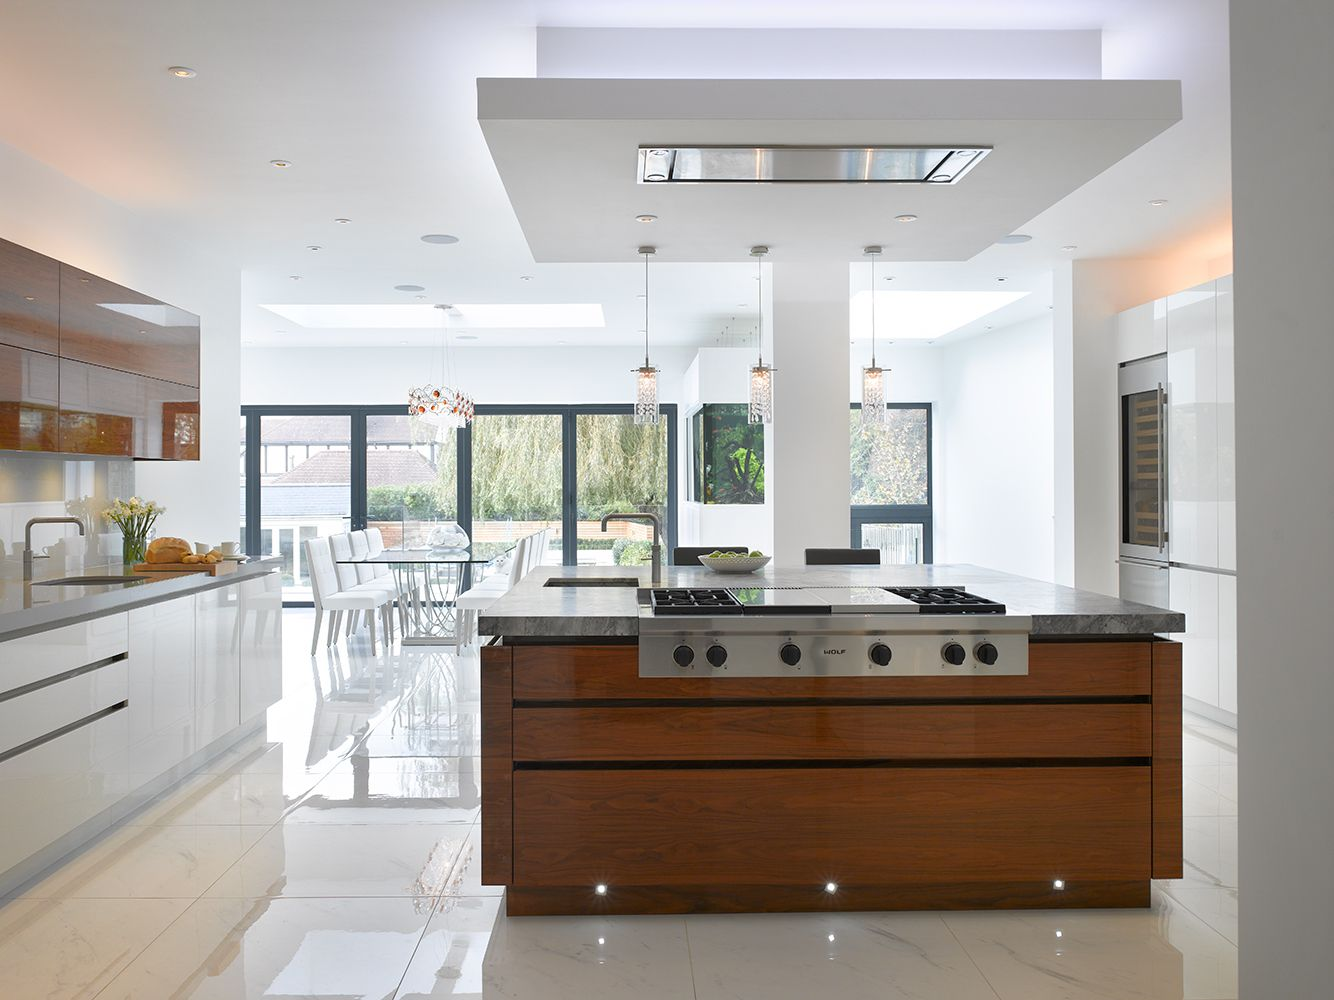 Roundhouse urbo high gloss white lacquer bespoke kitchen with book